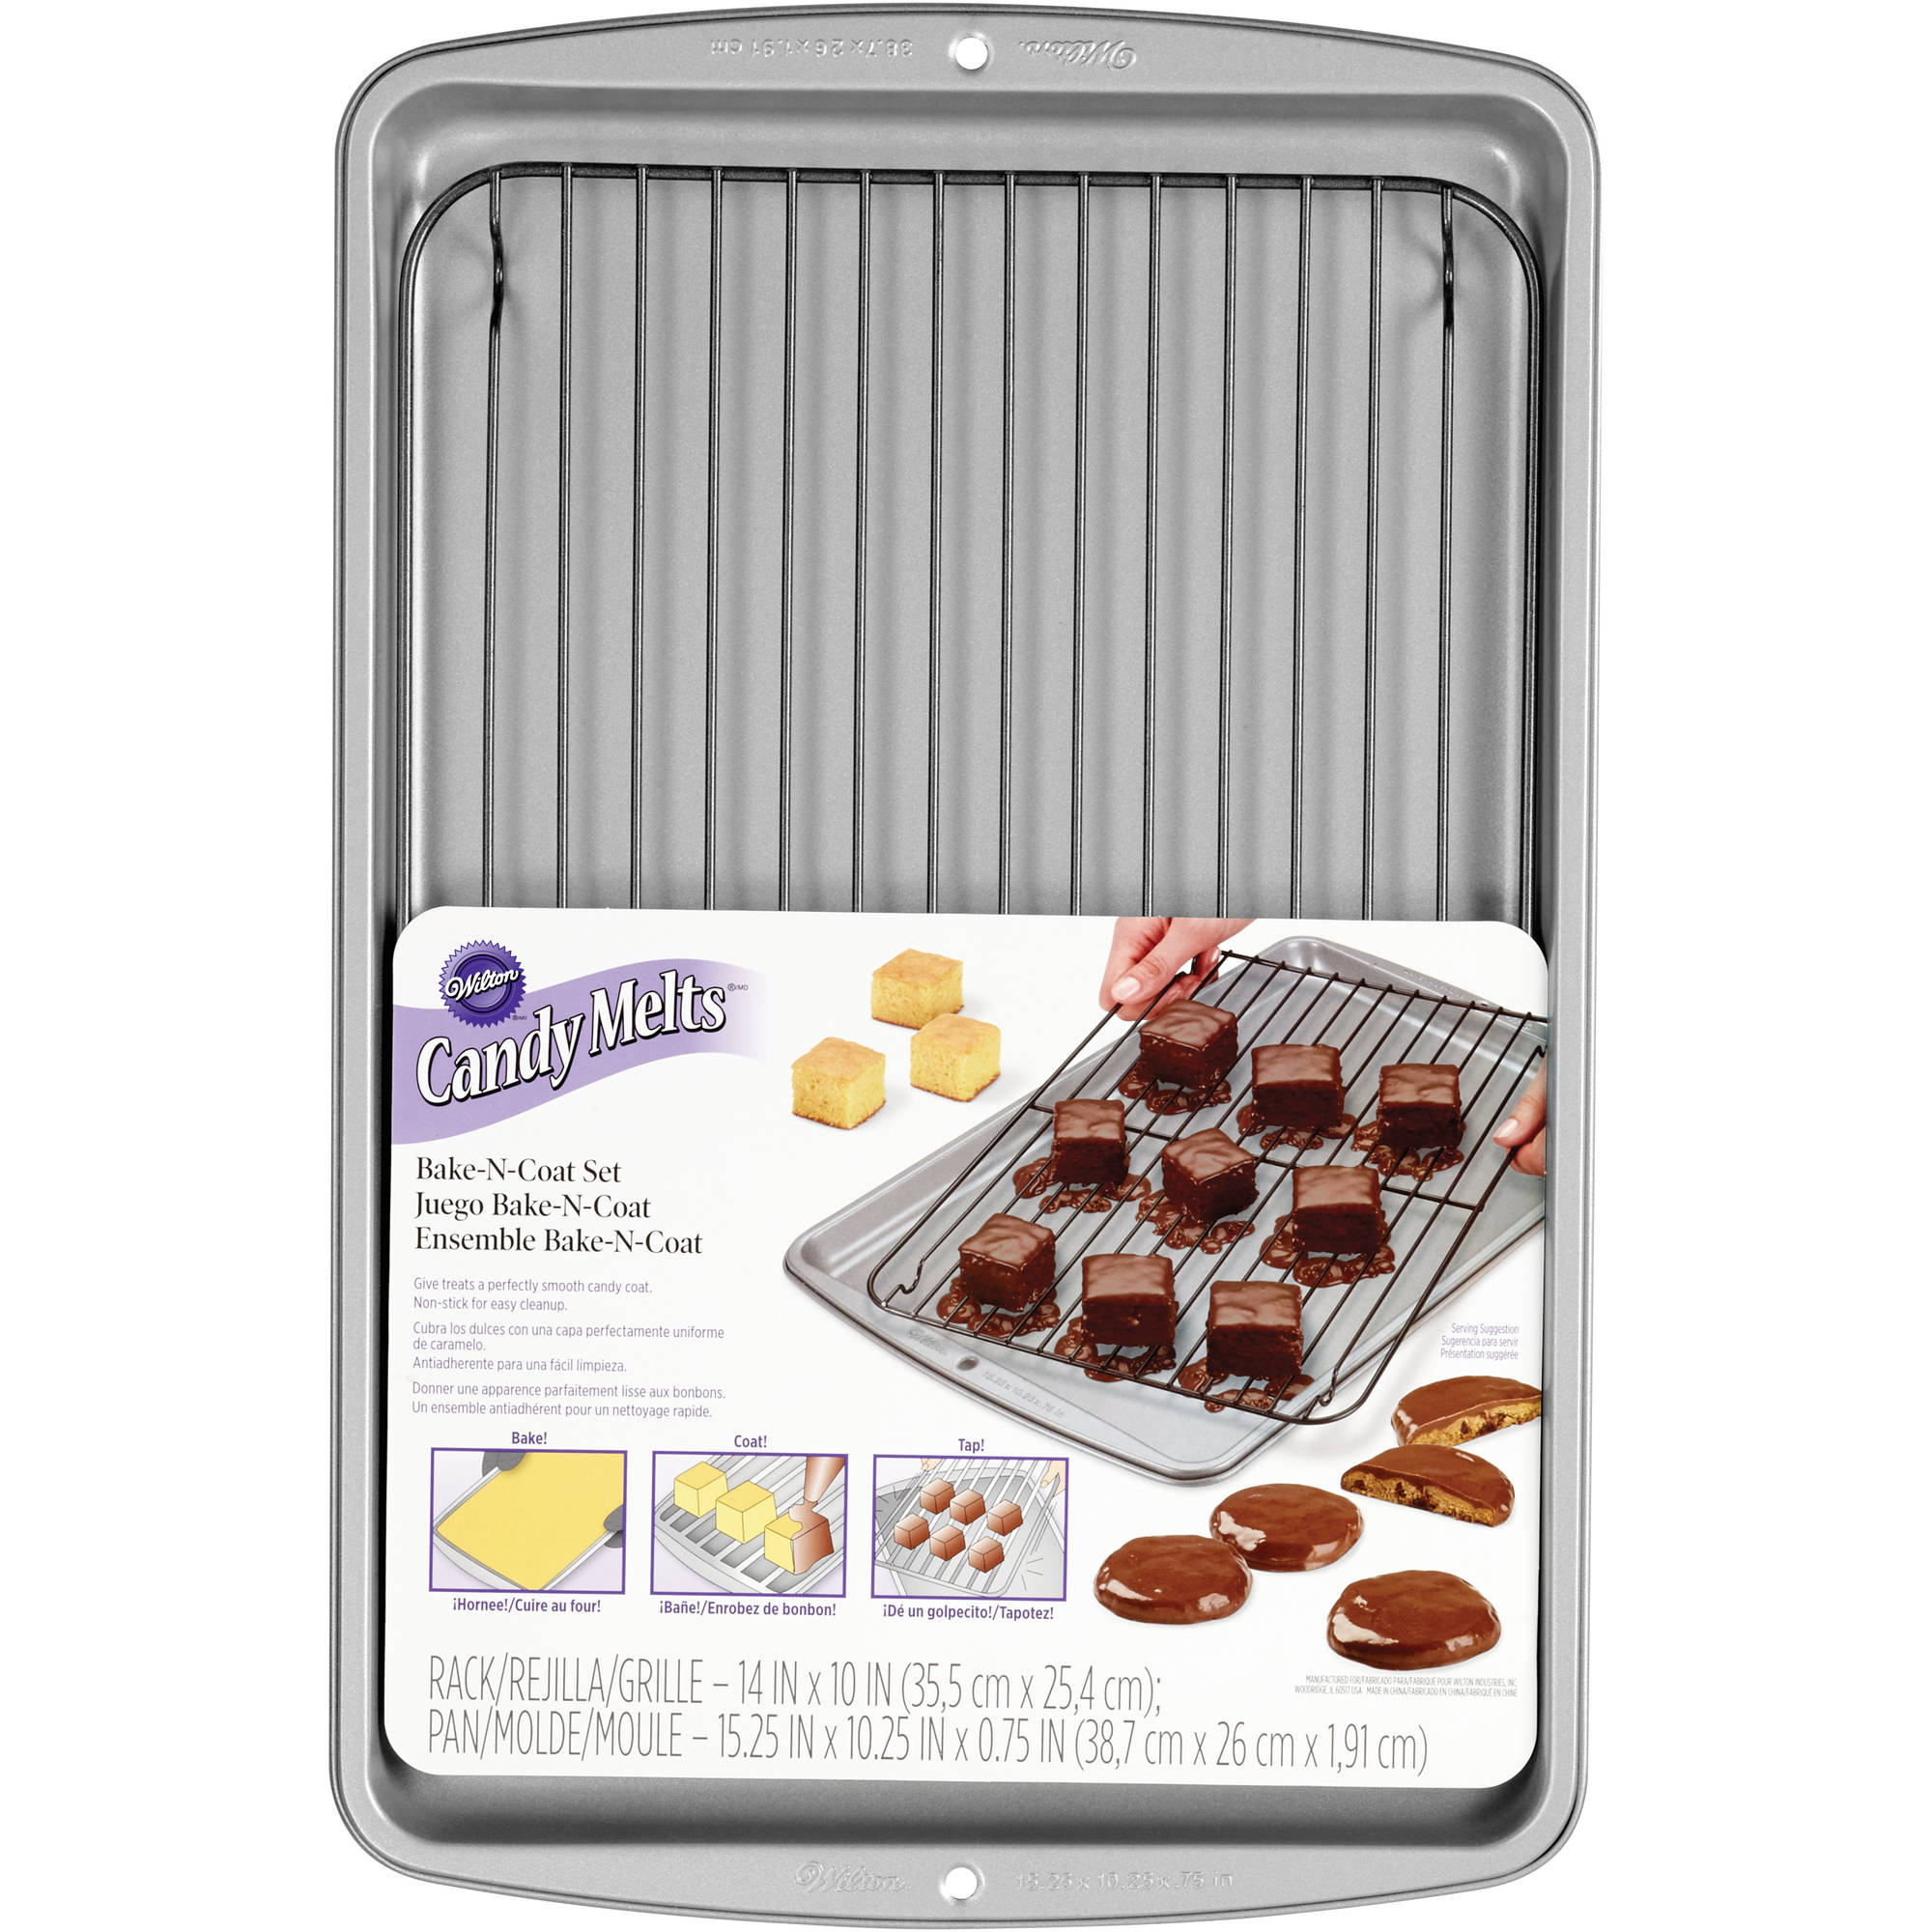 Wilton Candy Melts Bake 'N Coat Decorating Set 2105-0170